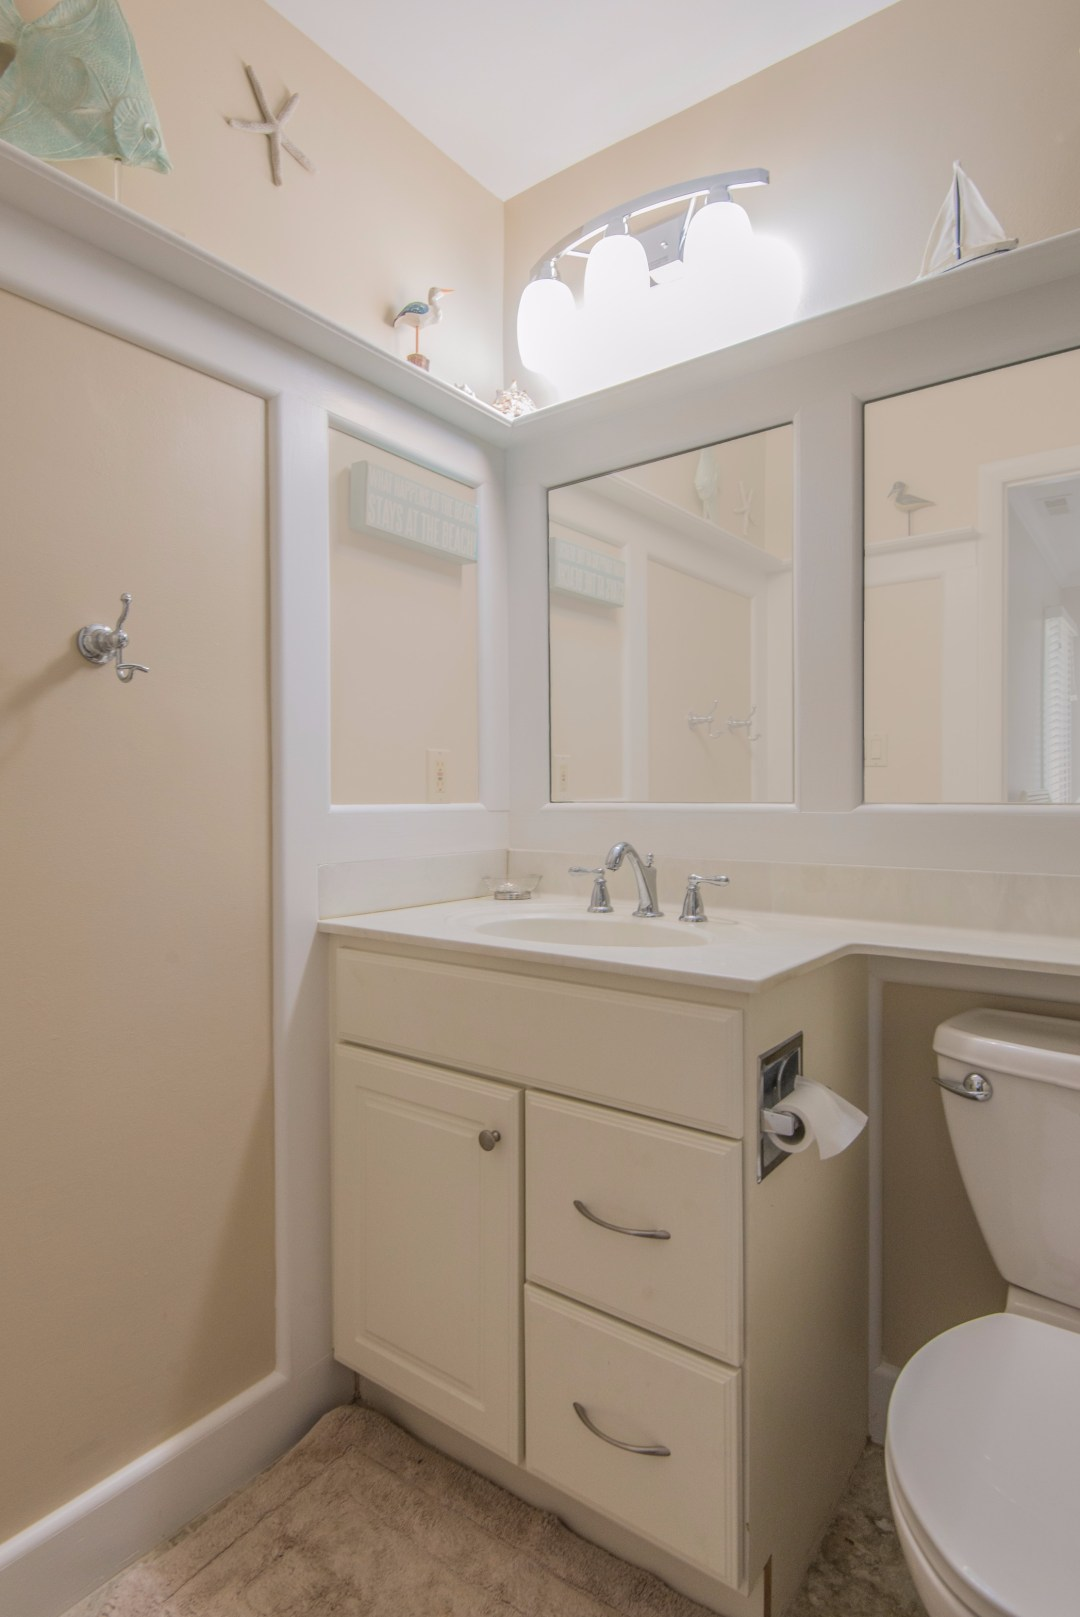 Bathroom Remodel in Kings Grant, Fenwick Island DE with Mantel Above Full Length Mirror and White Vanity With White Top